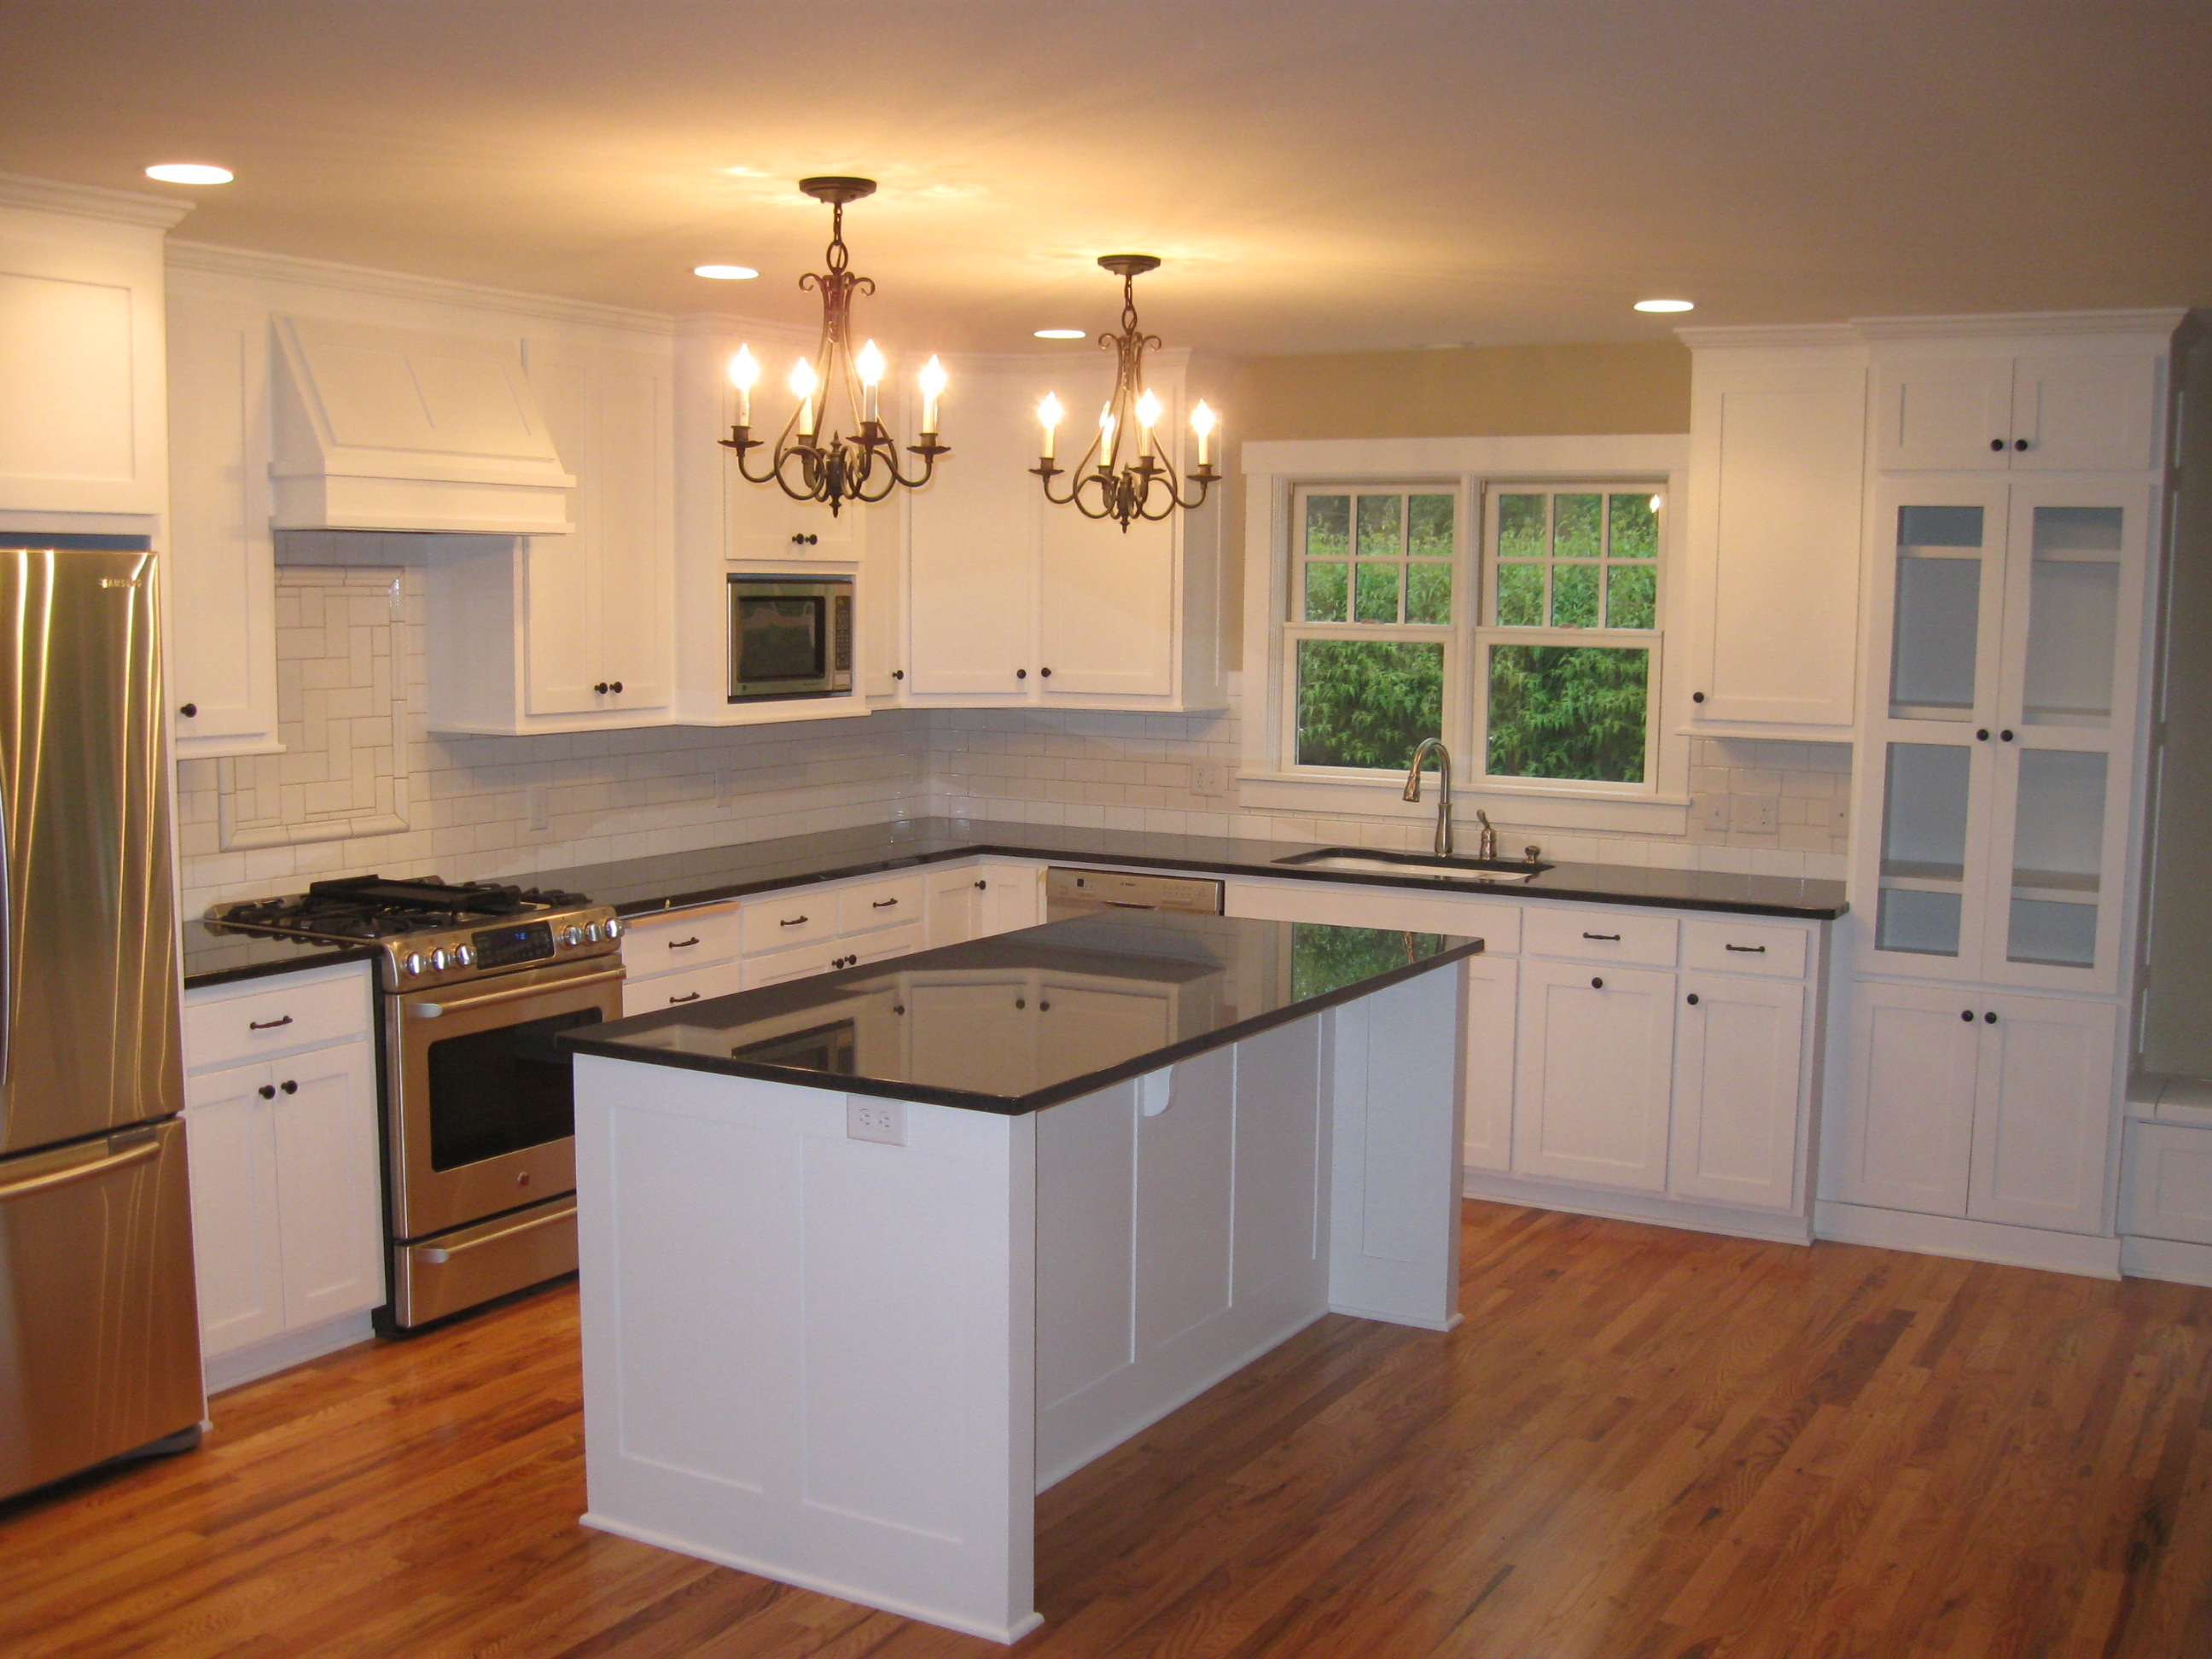 wall cabinets for kitchen cabinet kitchen Wall cabinets for kitchen Photo 6